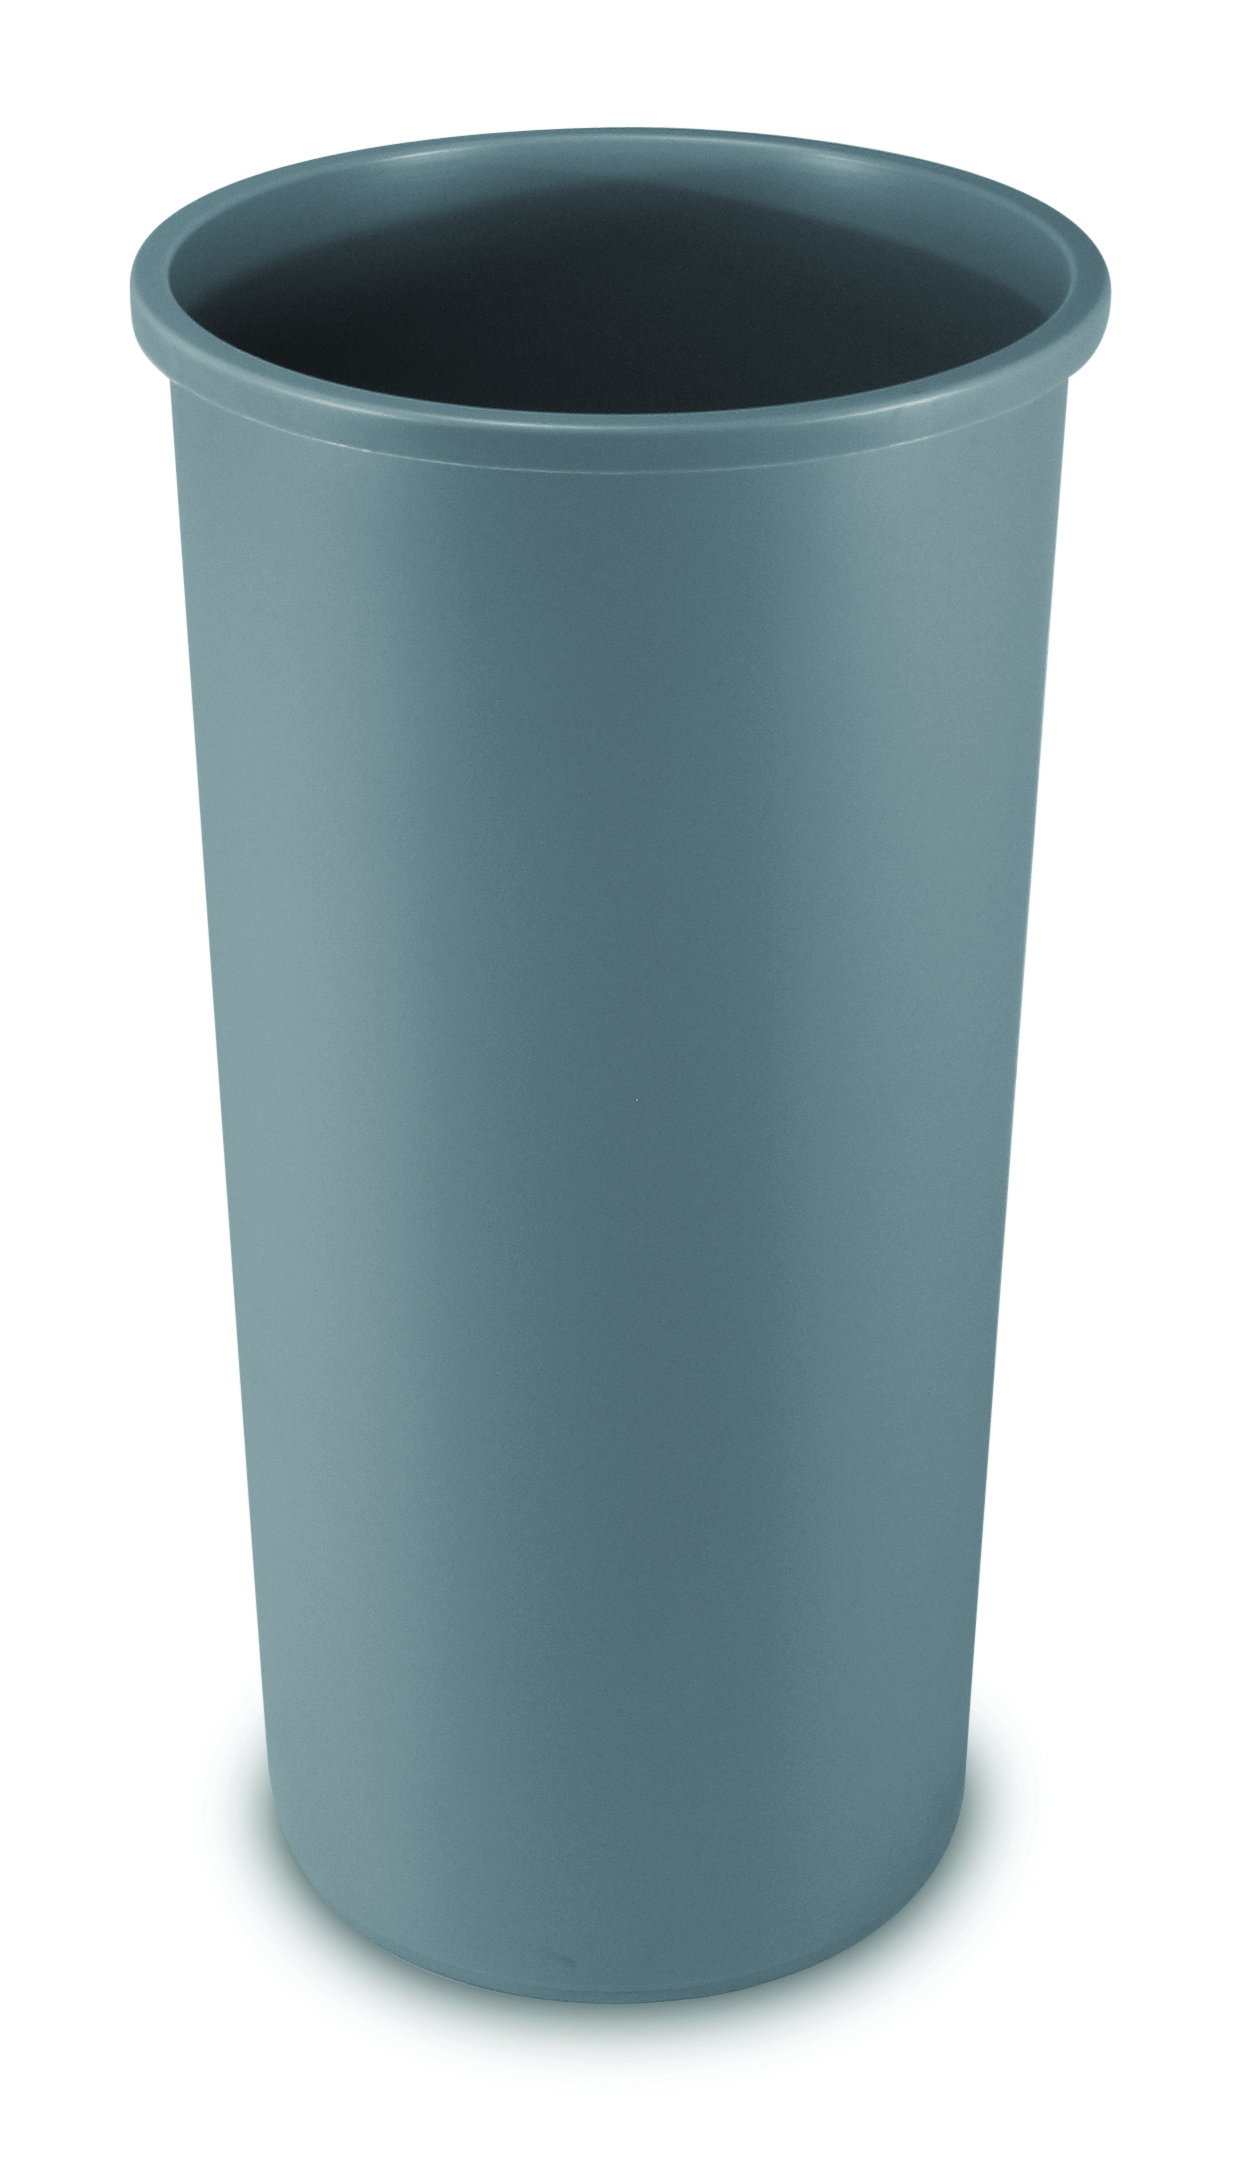 22 Gallon Tall Rubbermaid Untouchable Commercial Round ...